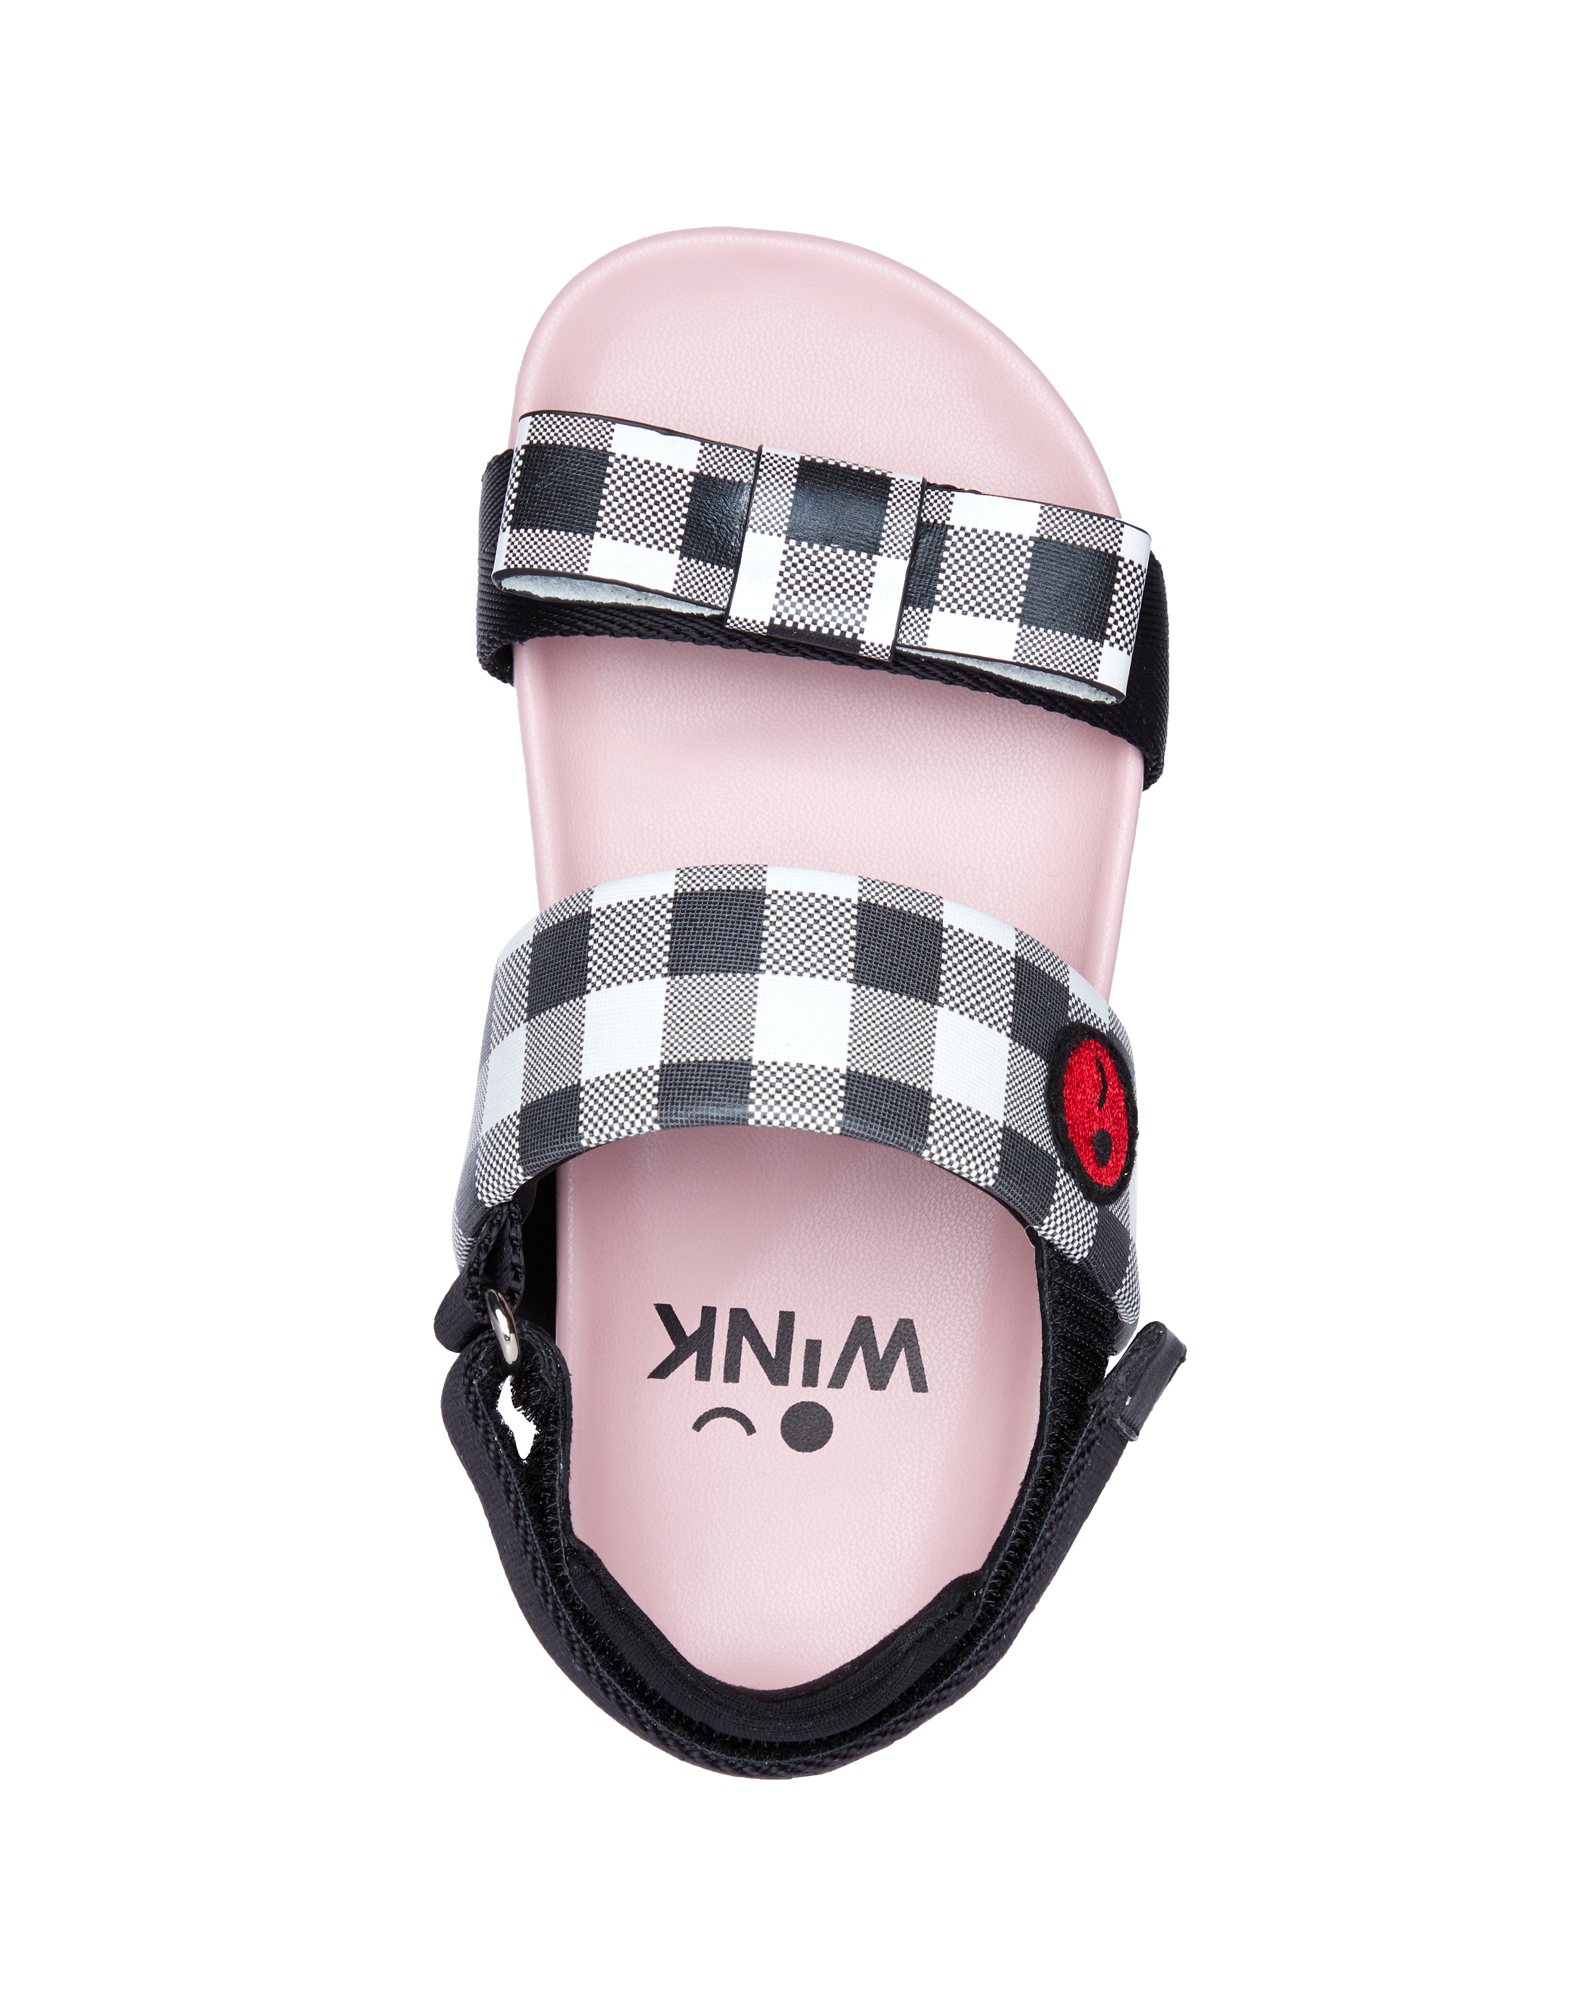 WINK SHOES 2019 007_04.jpg